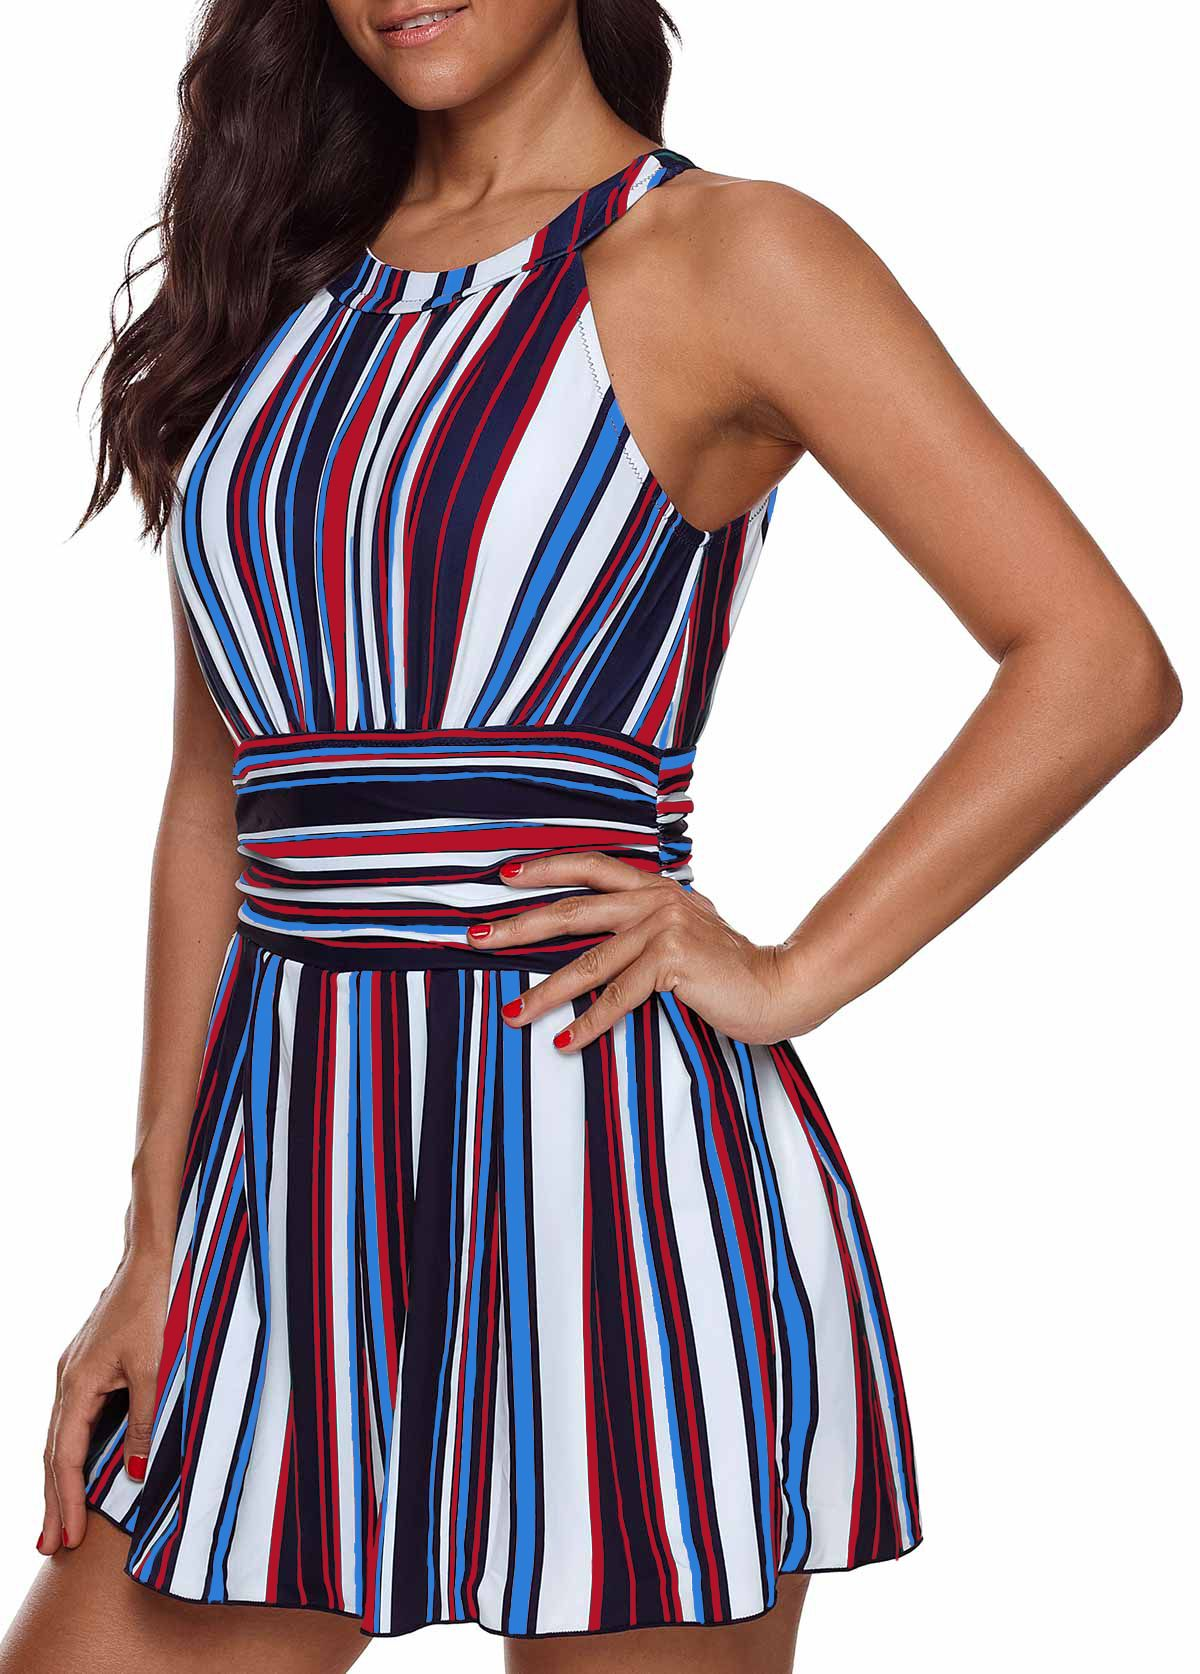 e772893b24903 ... One Piece Swimsuits, Swim Cover Ups. Cutout Back Padded Multicolor  Striped Swimdress and Shorts